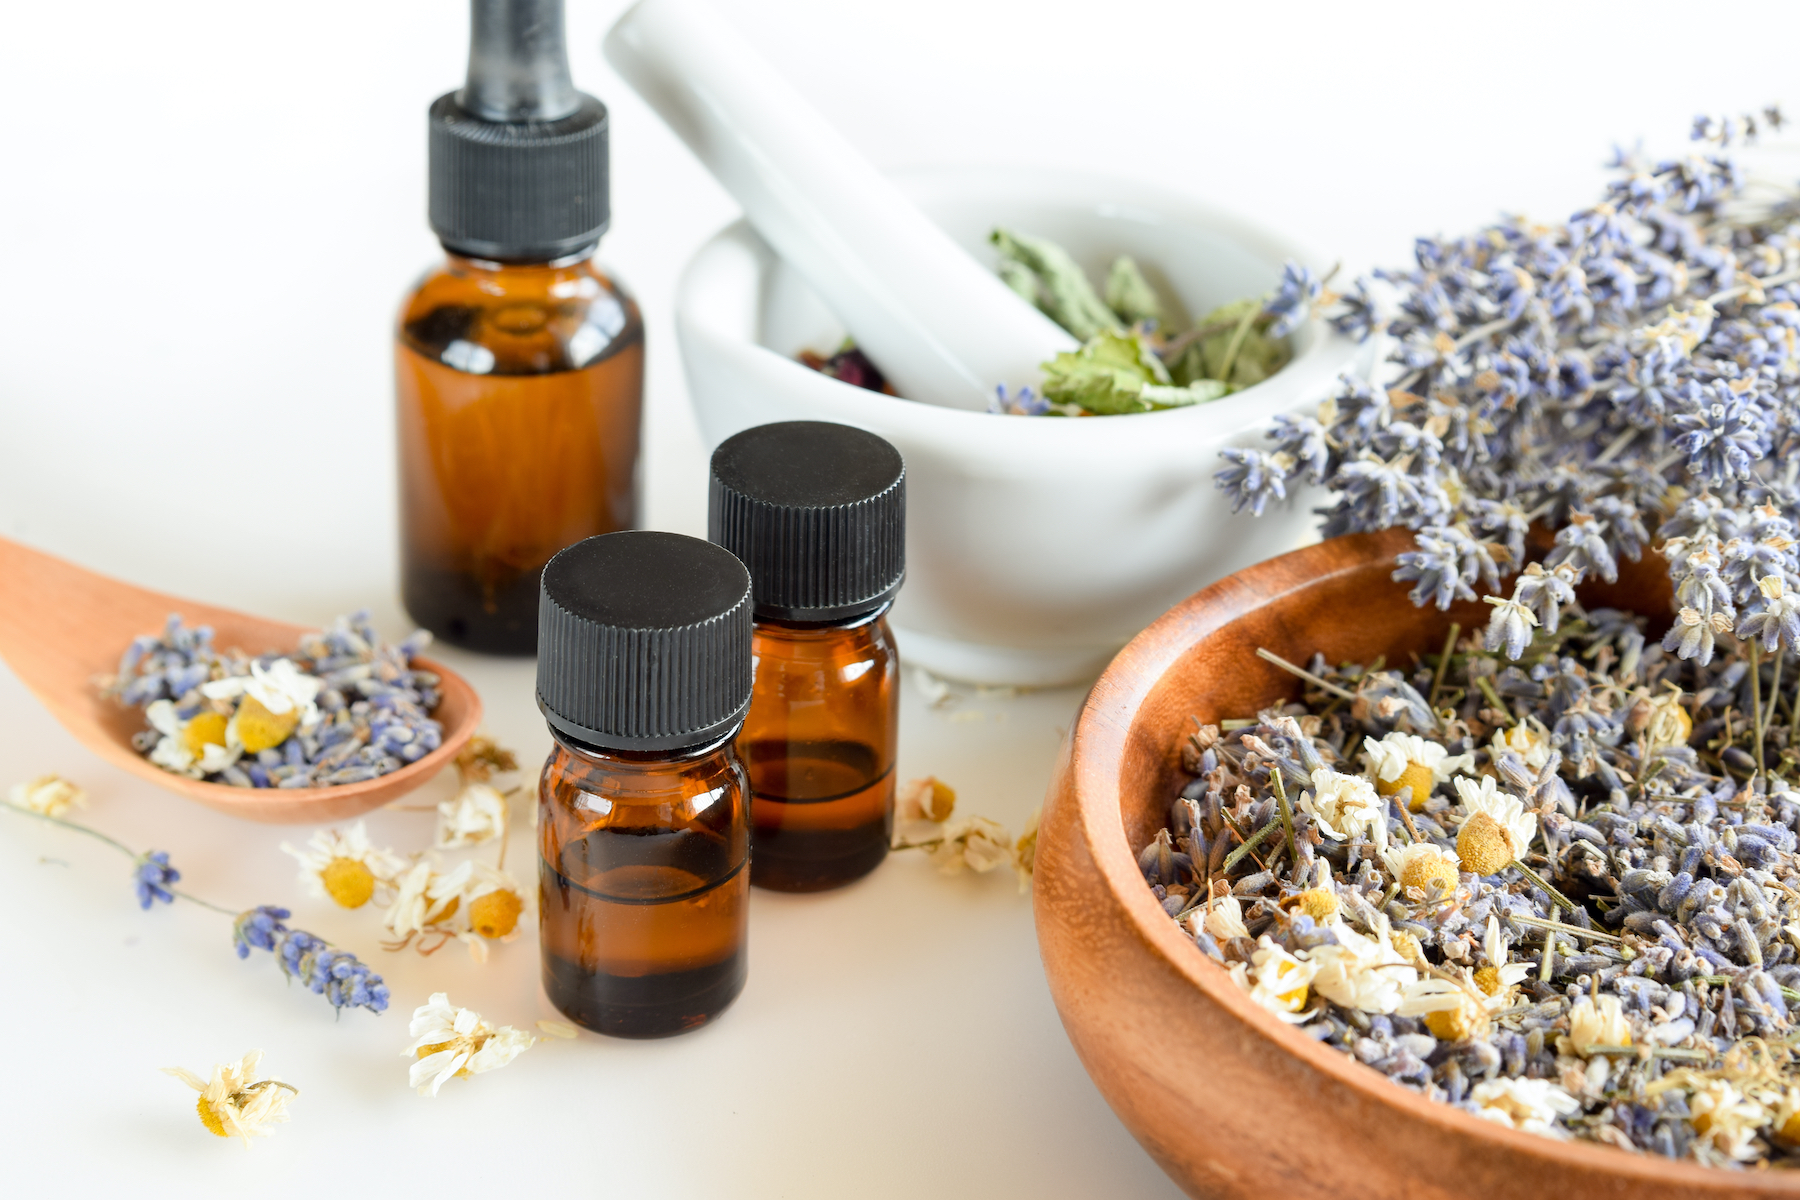 pawp essential oils with dried herbs